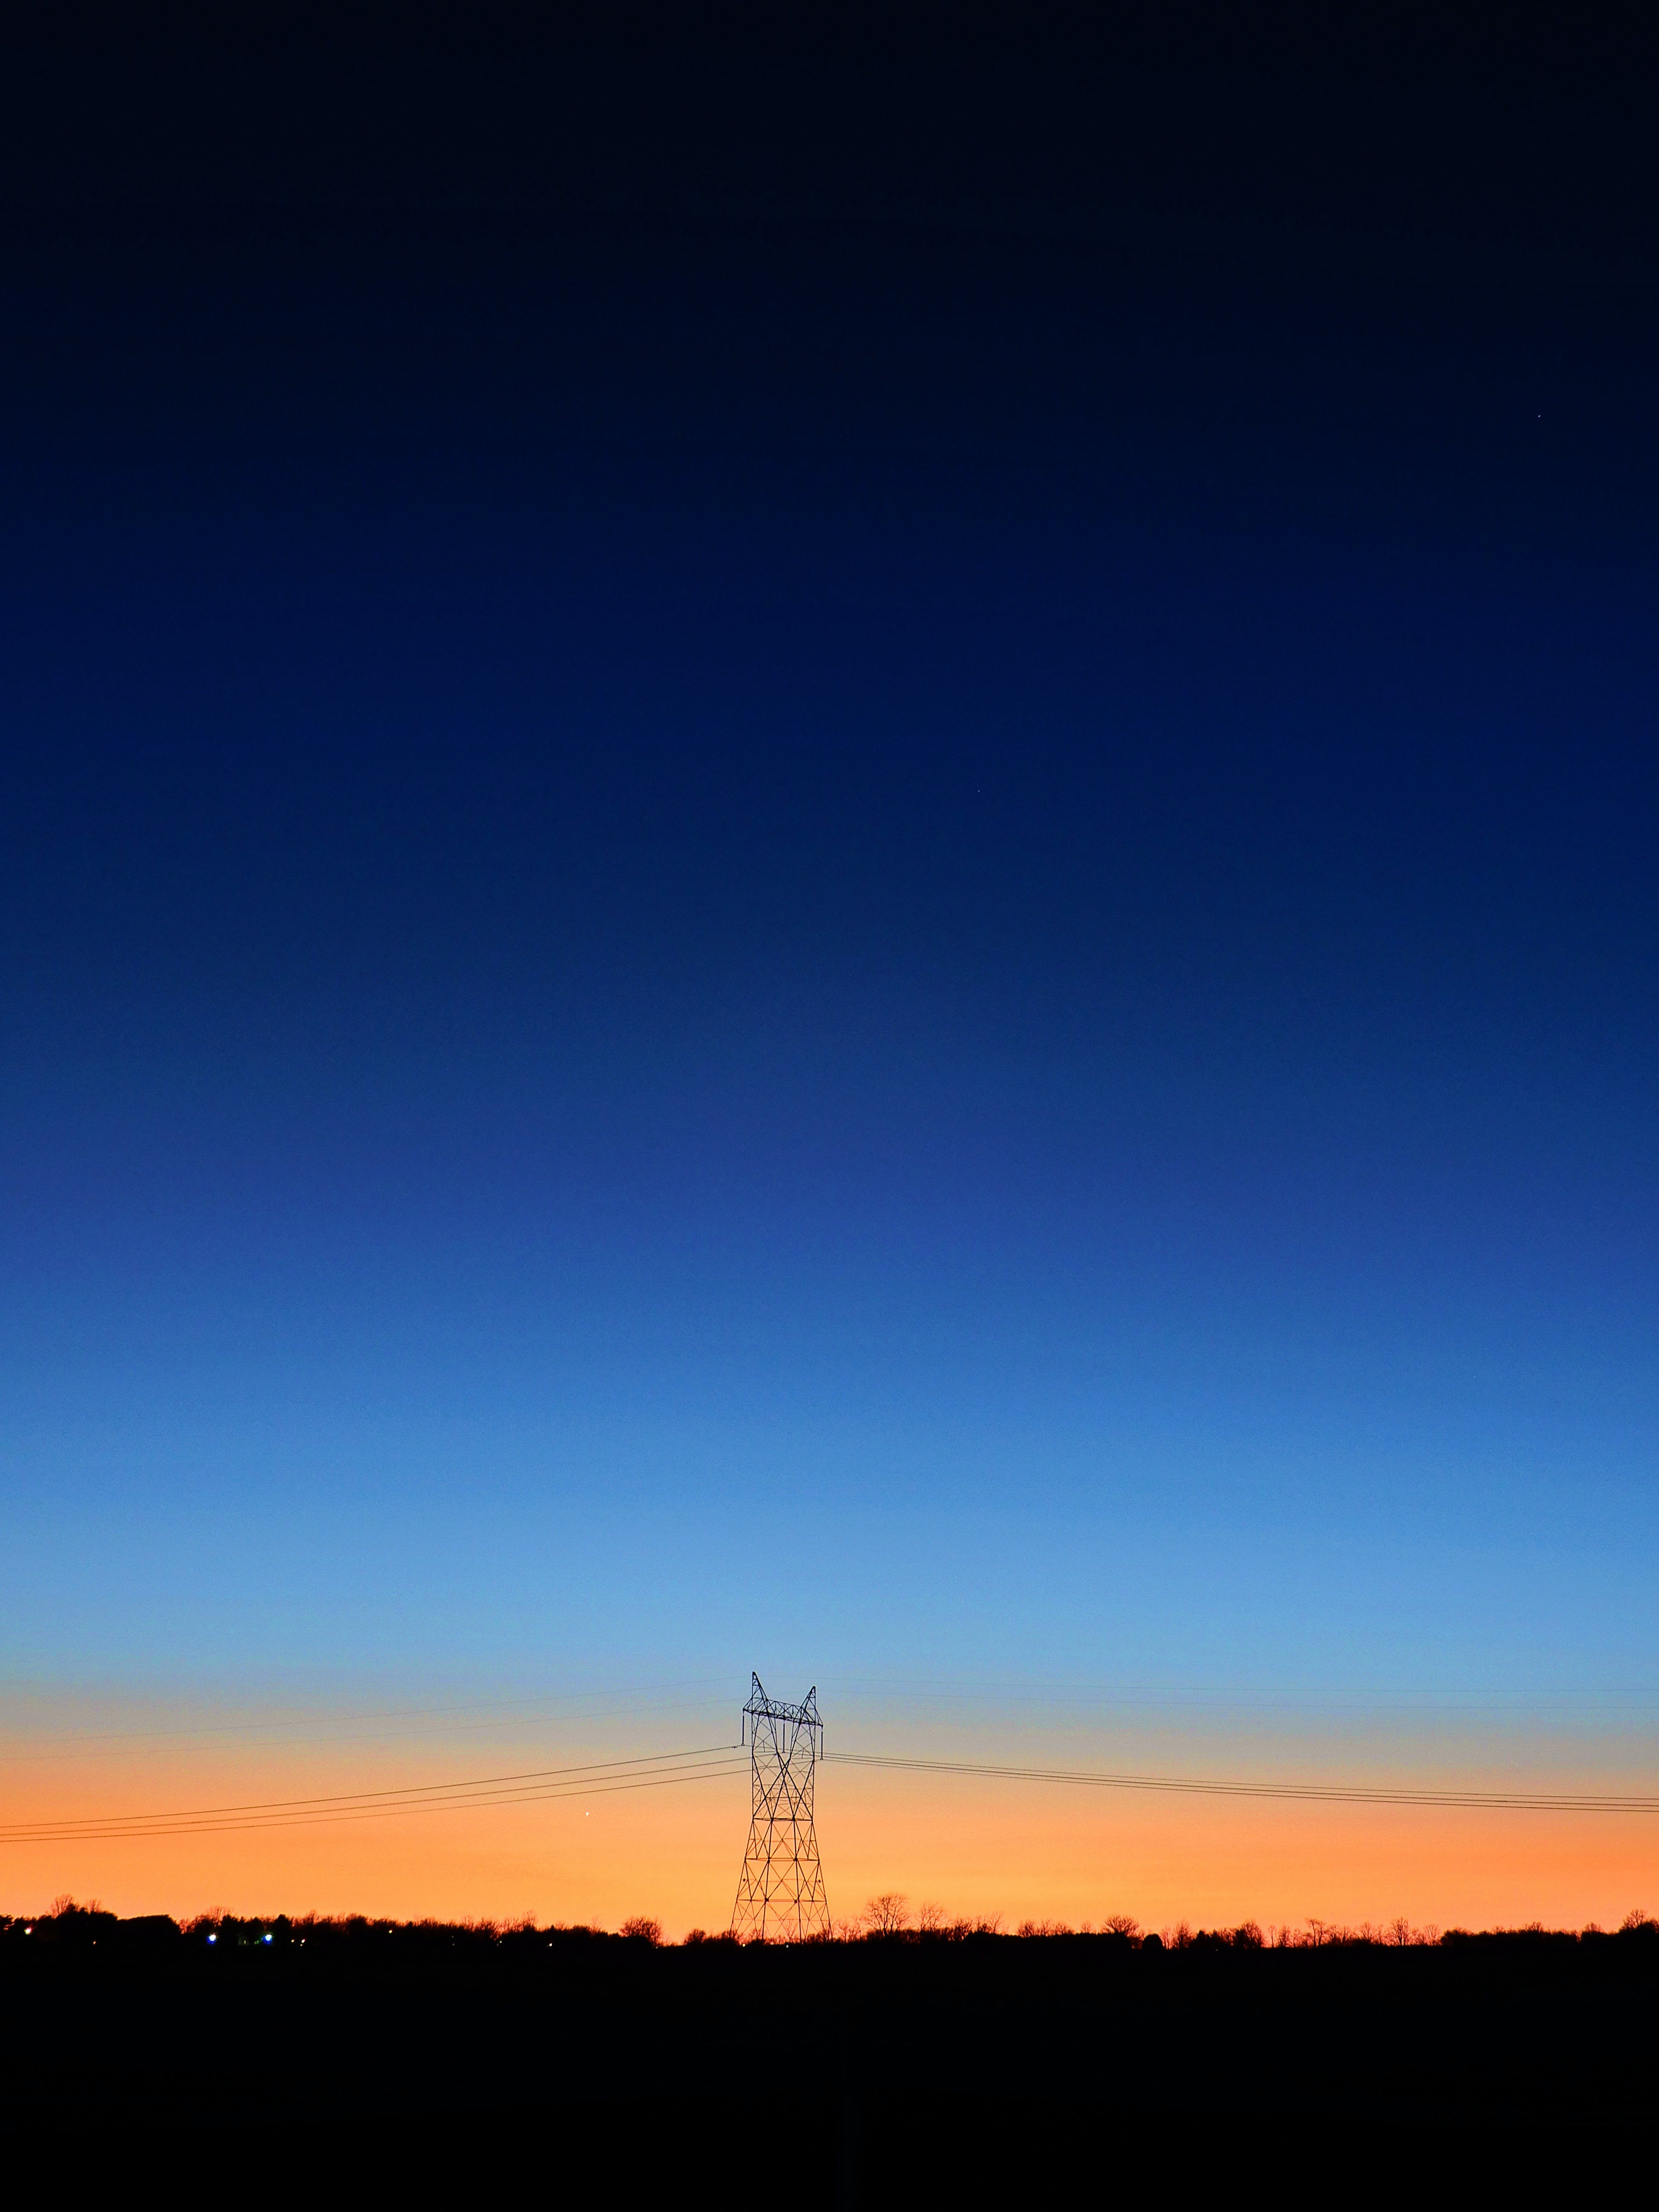 Black Transmitter Tower Under Blue and Orange Sky